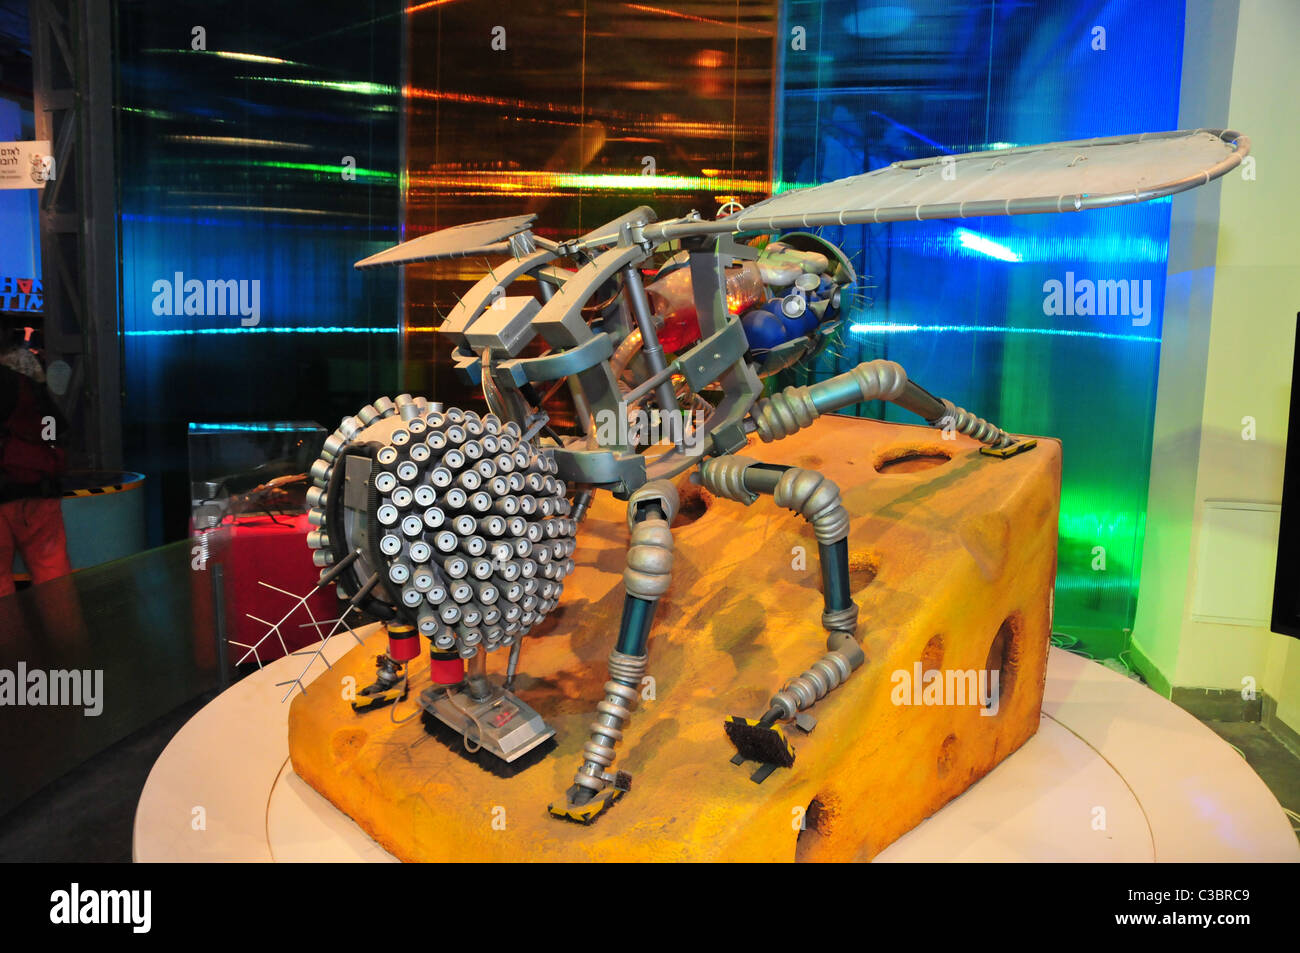 Israel, Haifa, MadaTech The Israel national Museum of Science The Robotic World exhibition. House fly robot Stock Photo